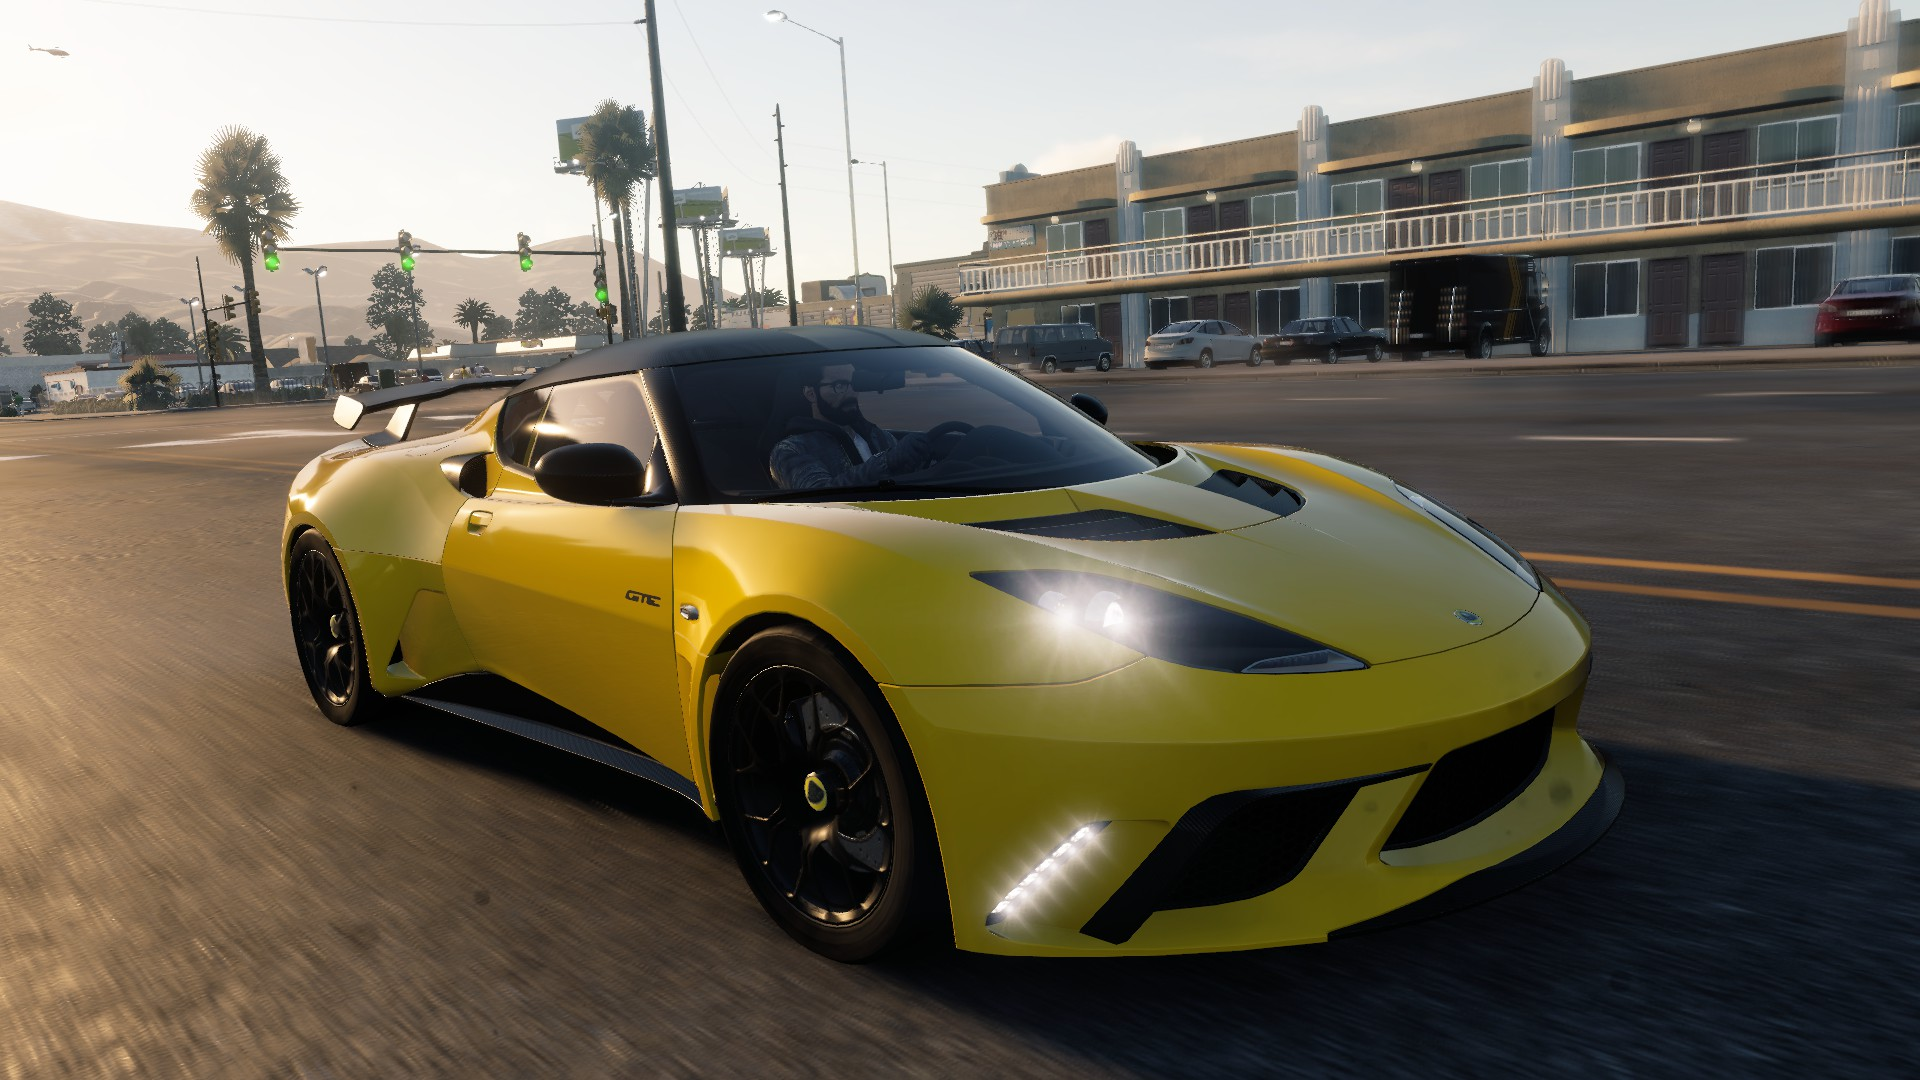 Lotus Evora Gte The Crew Wiki Fandom Powered By Wikia